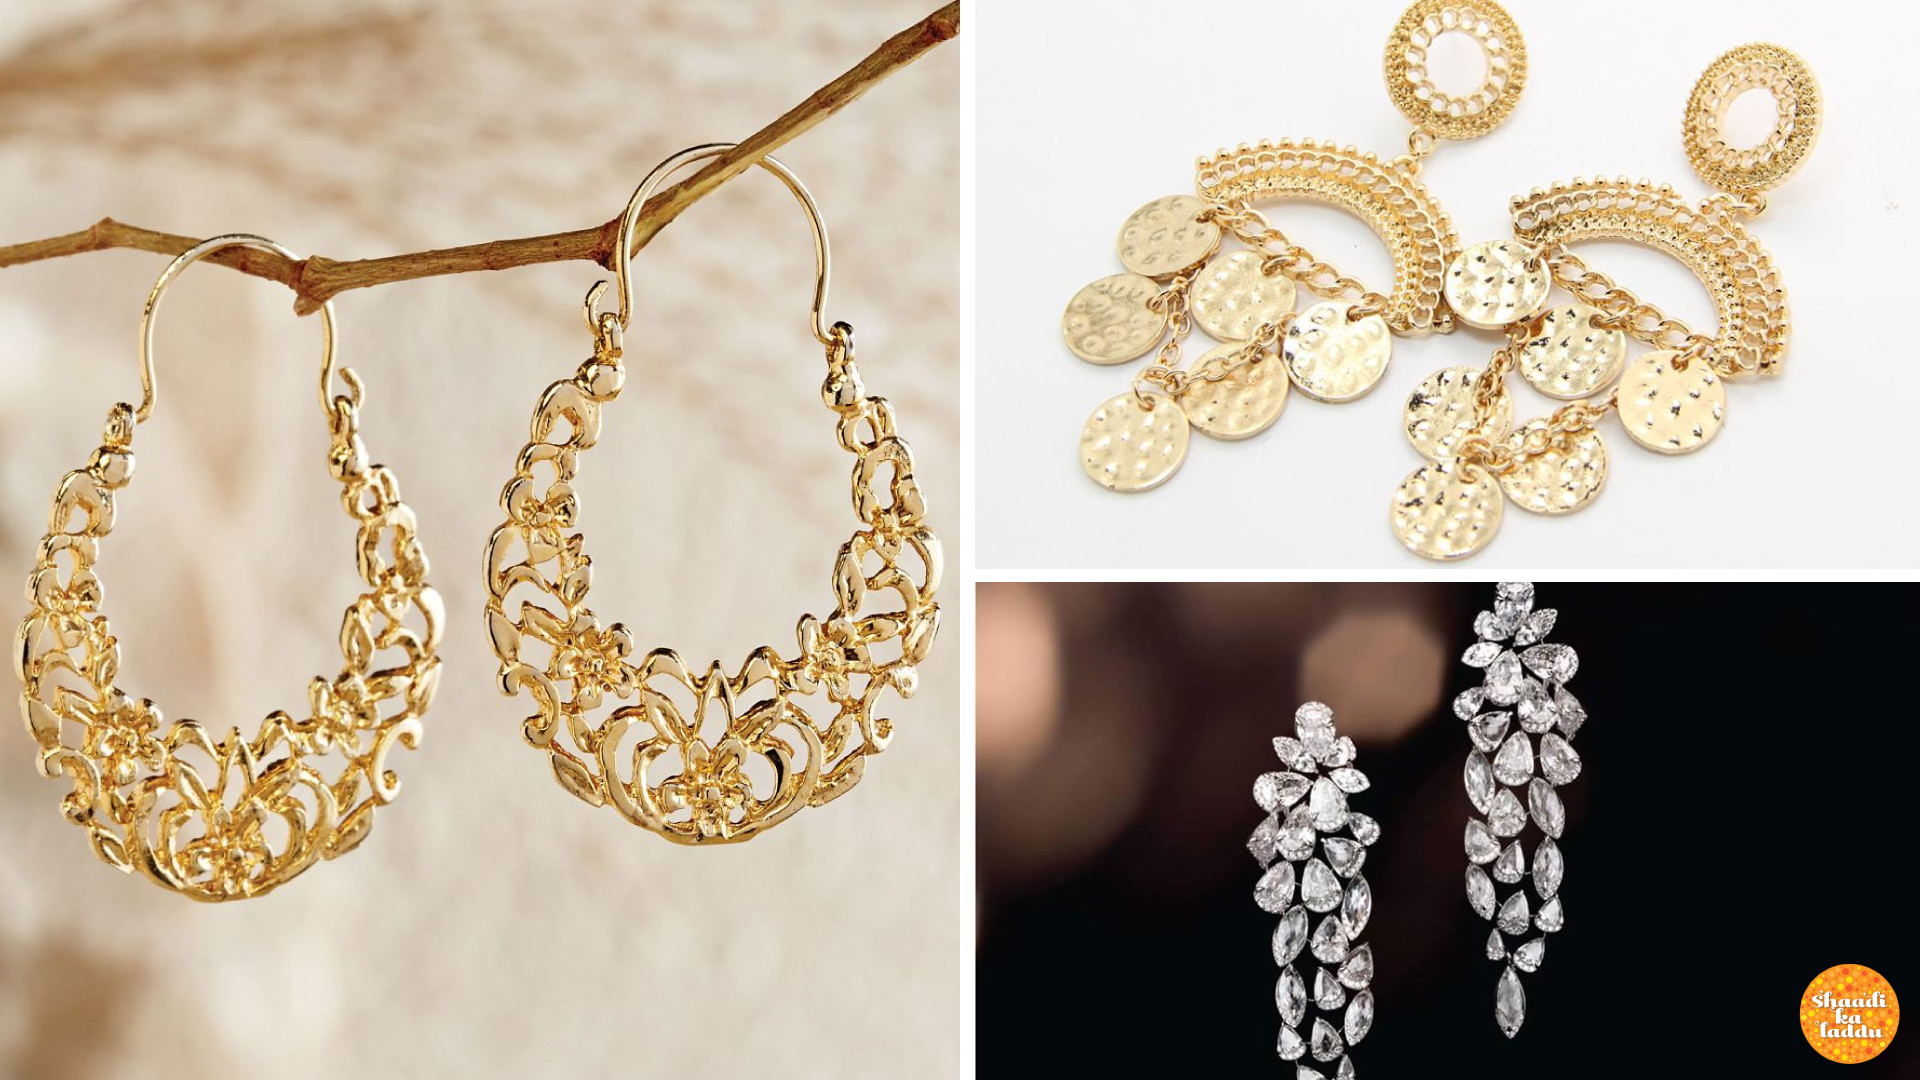 Heavy variety of danglers, chandeliers, and hoops earrings